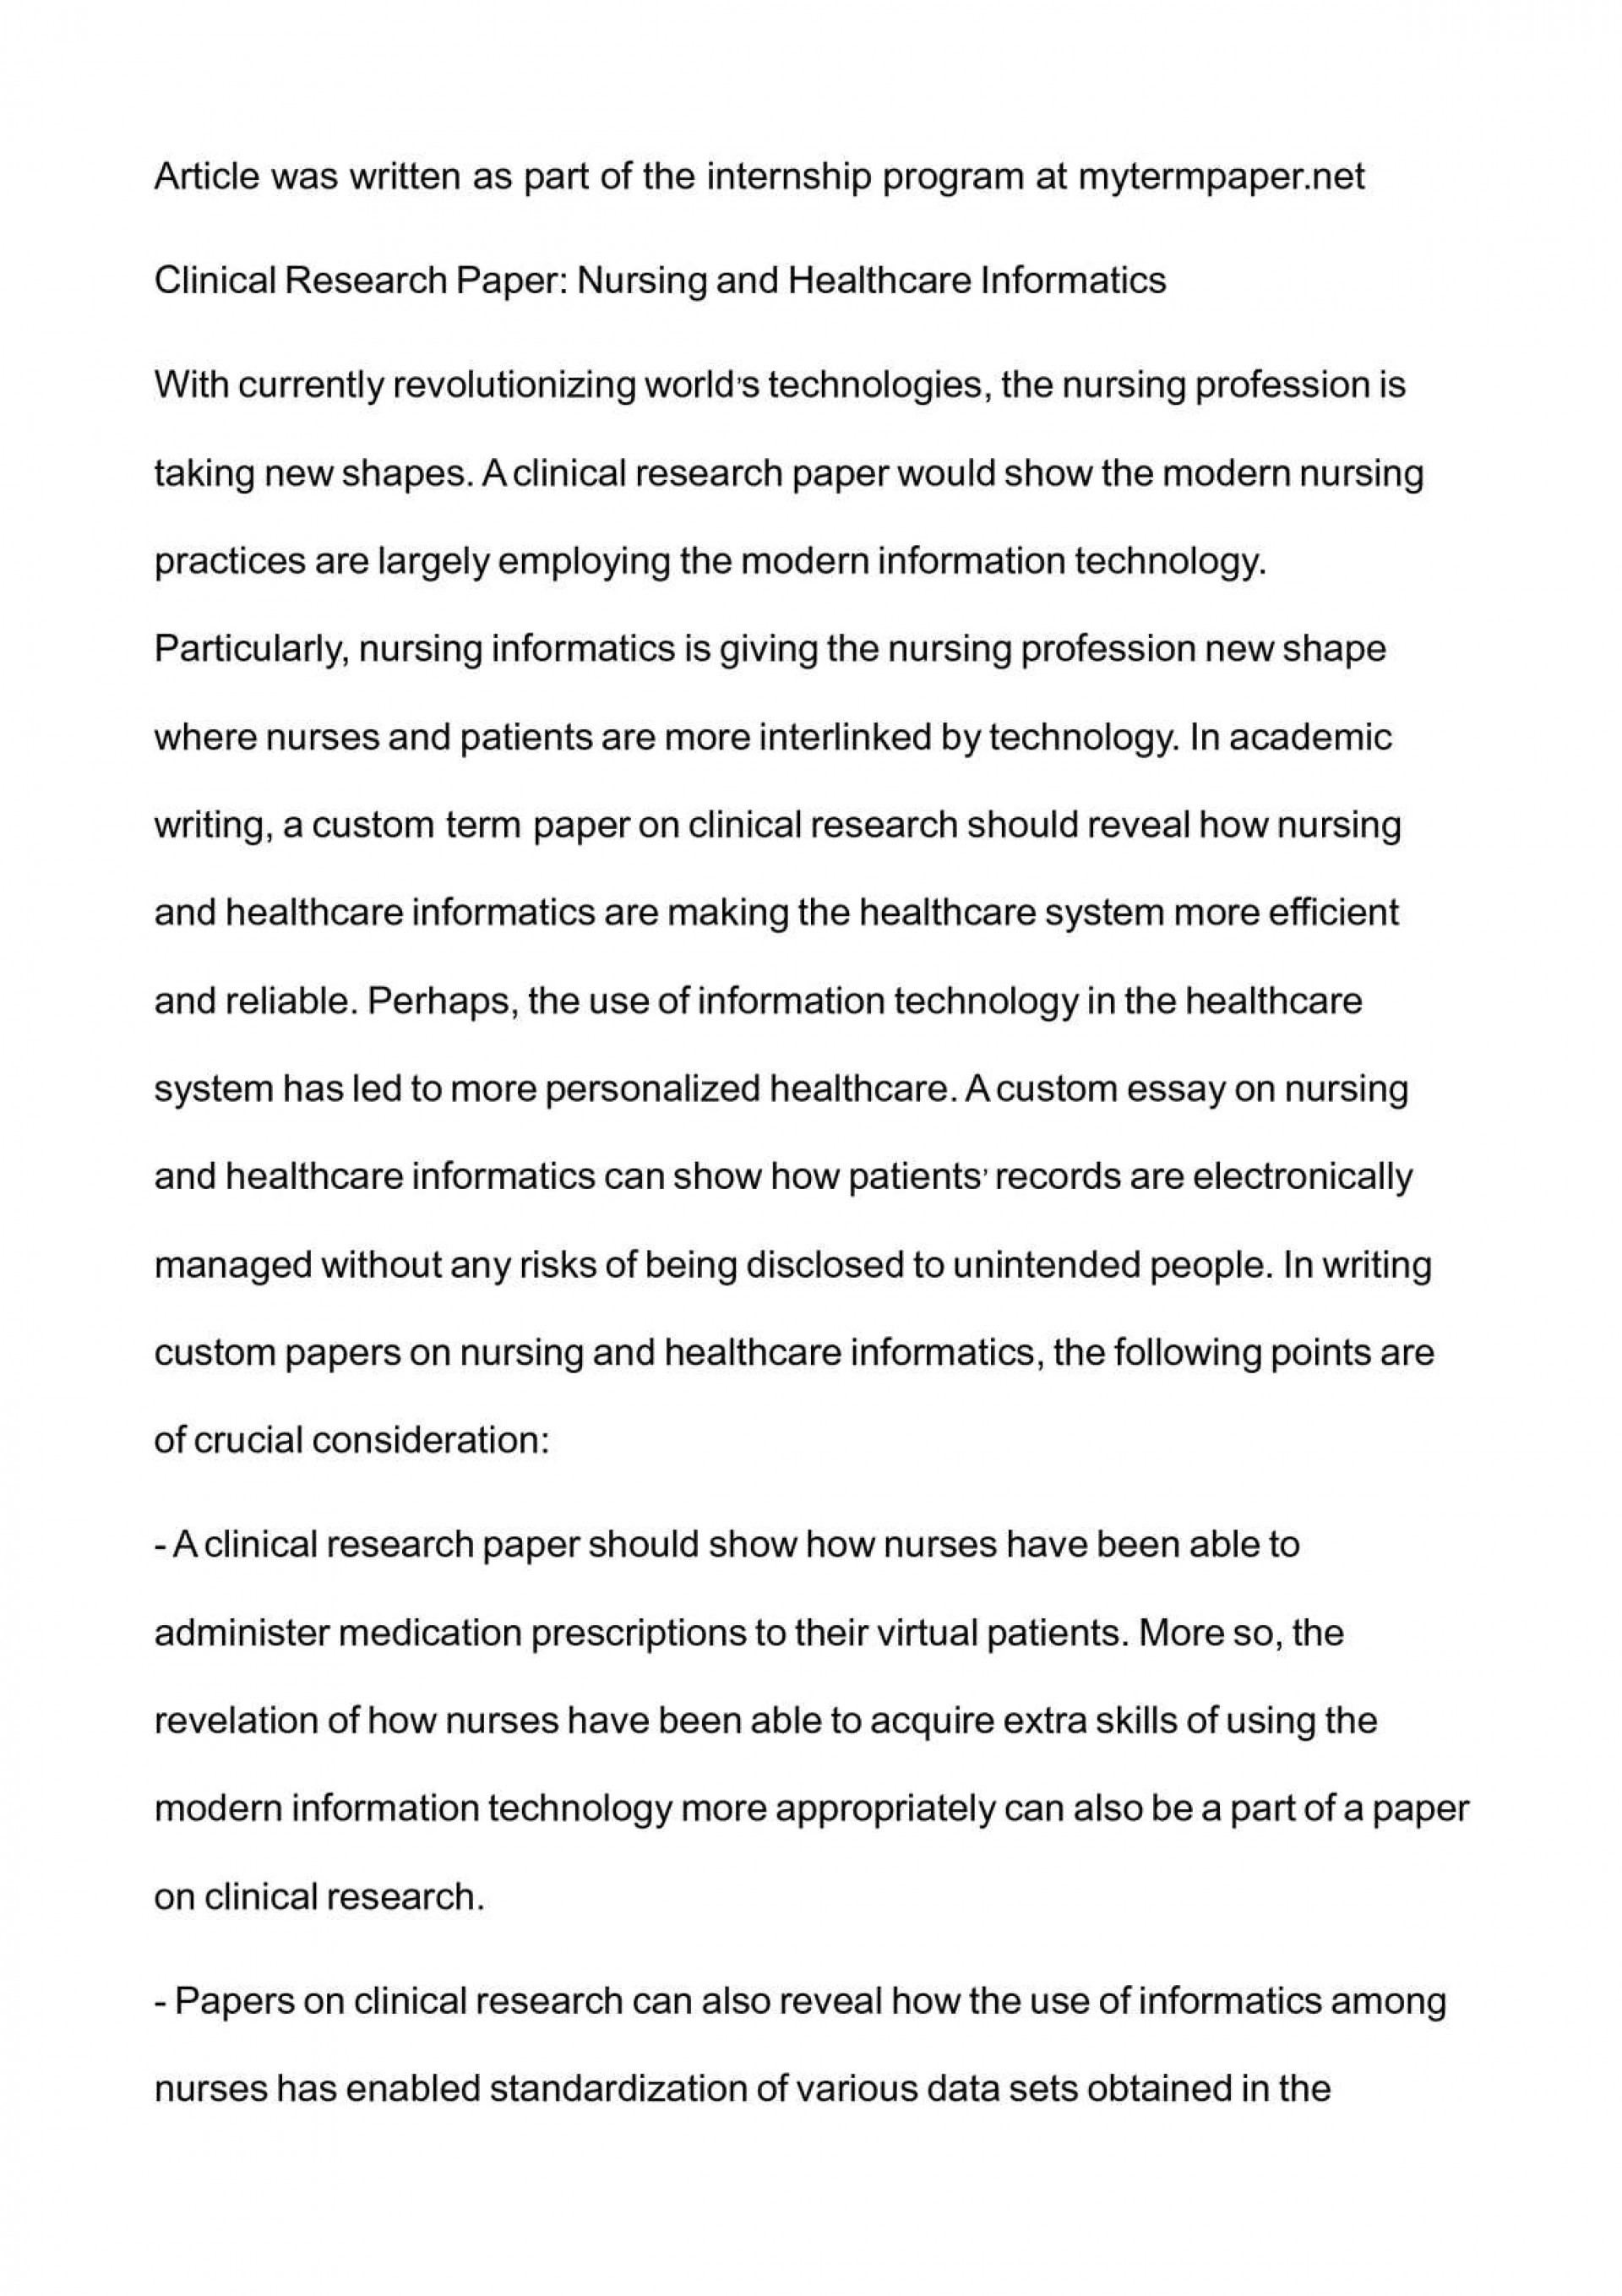 004 P1 Research Paper On Wondrous Nursing Topics Peer Reviewed Articles Shortage For 1920